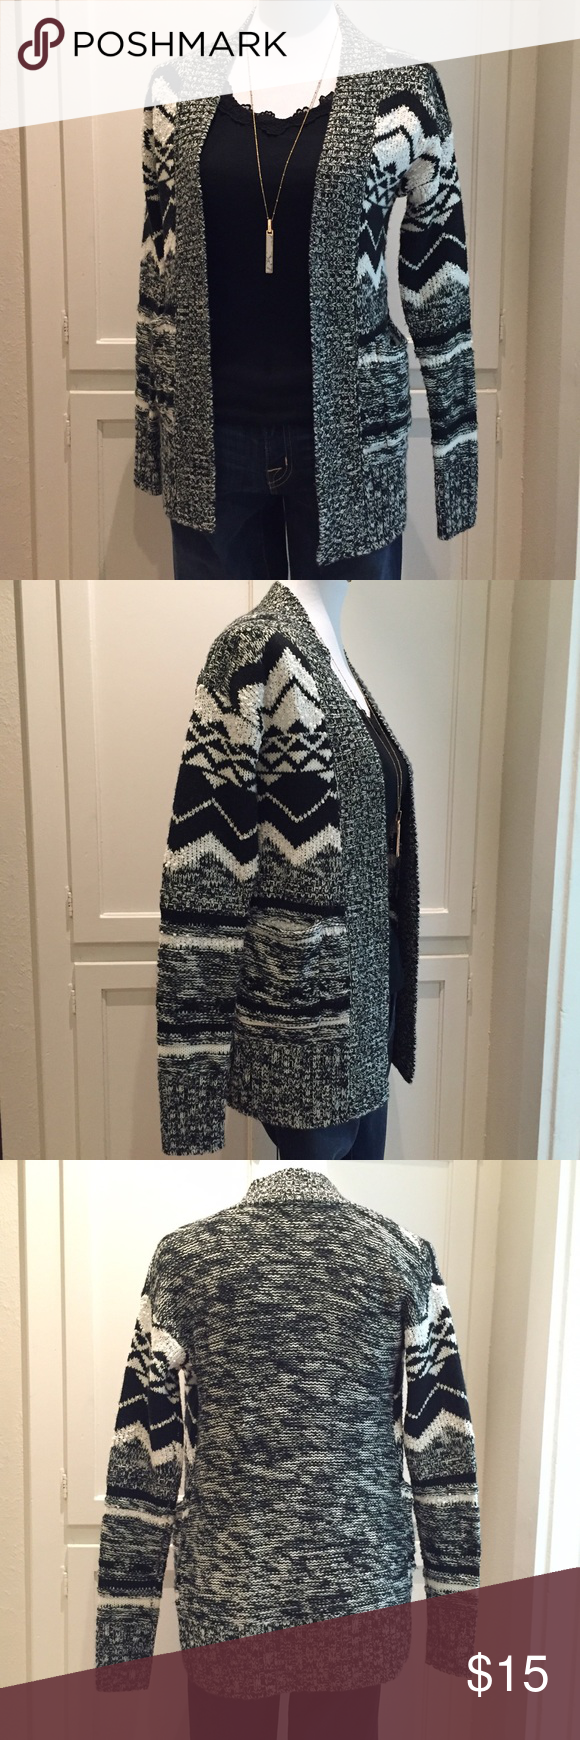 Mossimo Sweater Chunky knit sweater.  Open front.  Excellent condition. Mossimo Supply Co. Sweaters Cardigans